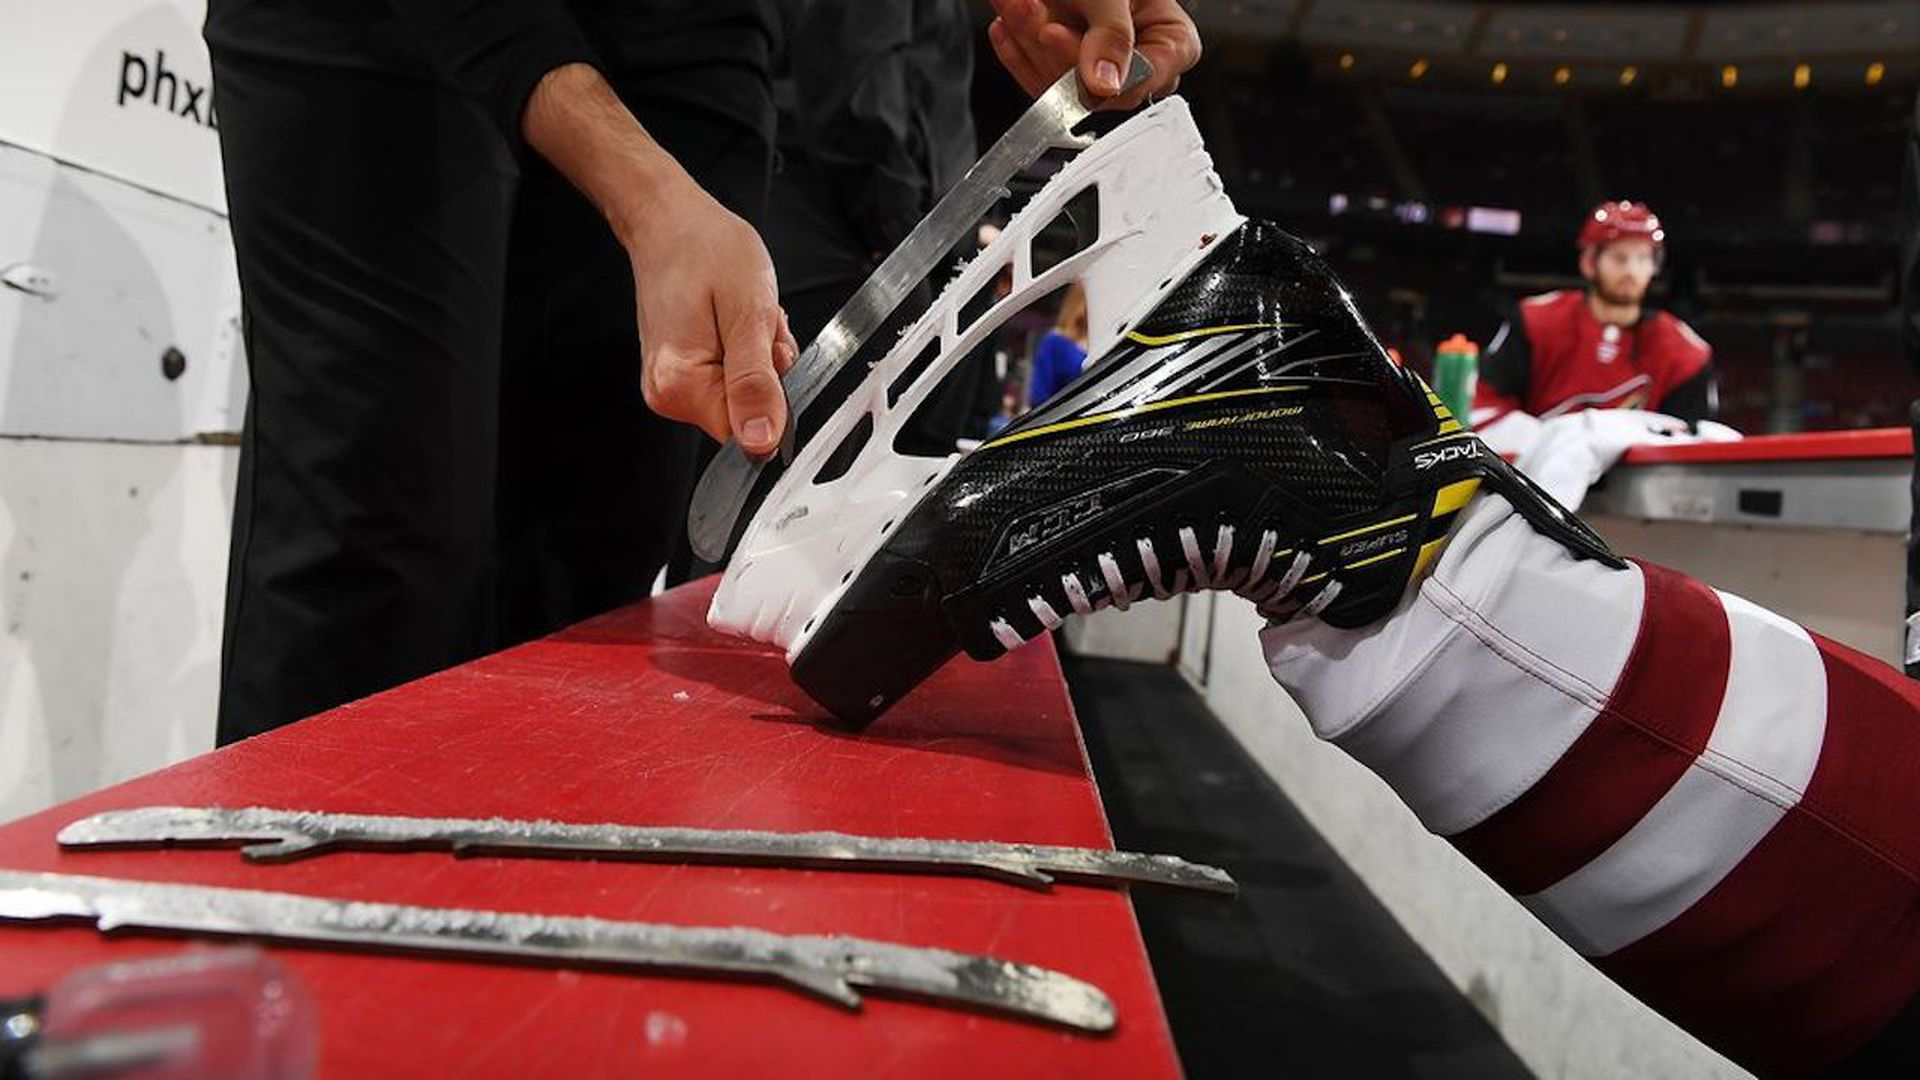 Someone sharpening a hockey blade